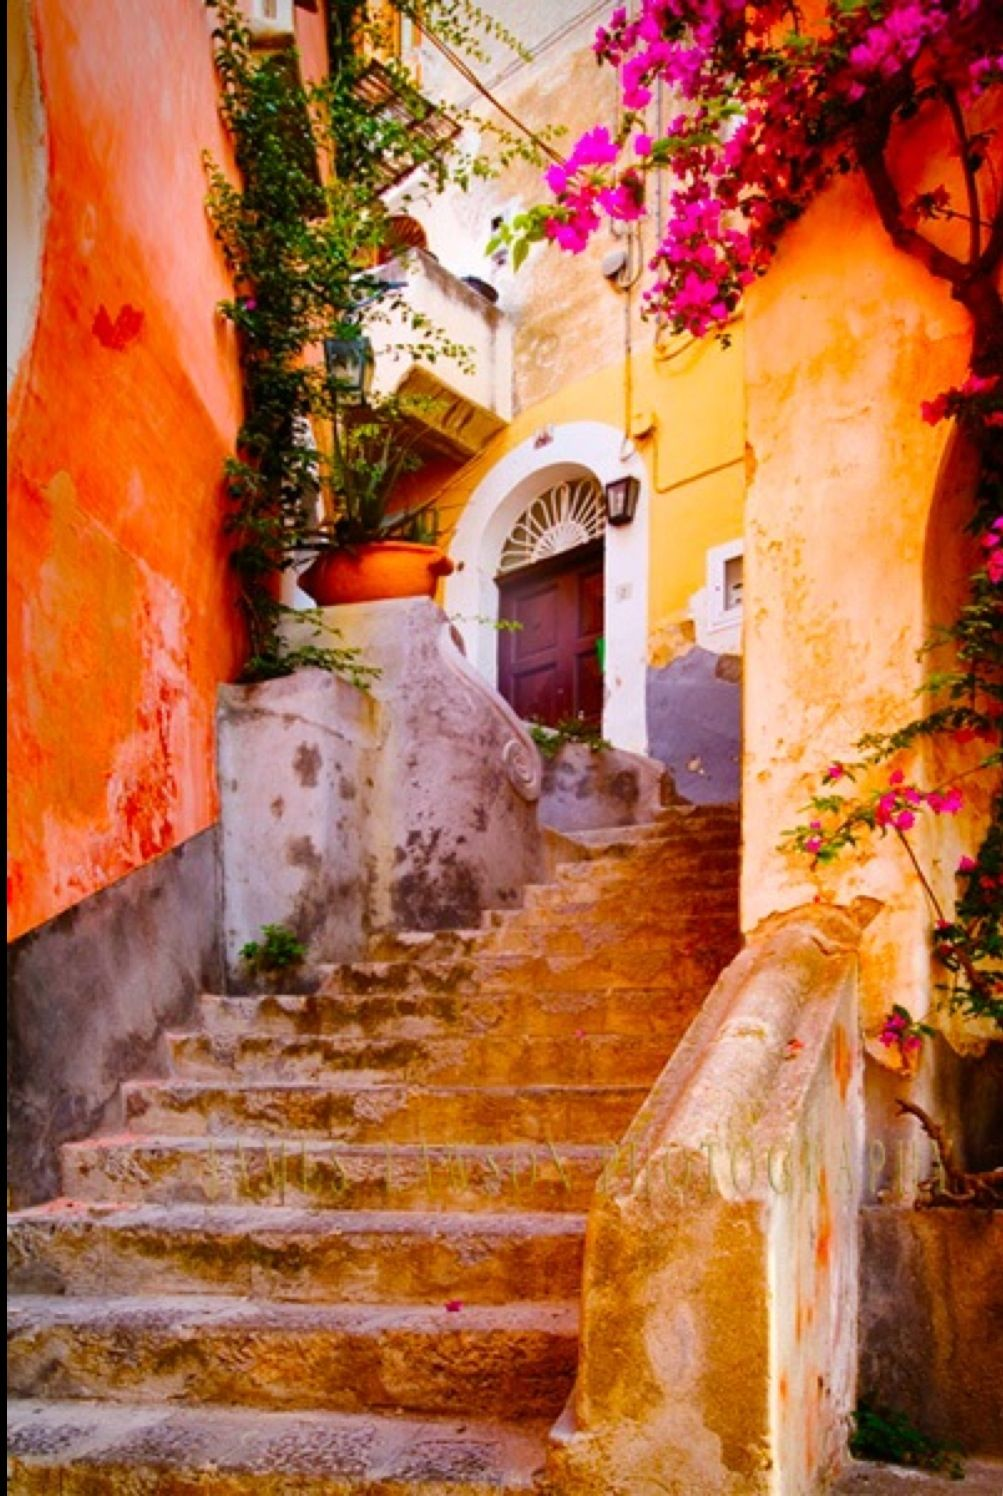 Colourful Quaint Old Stone Stairs and Buildings  Tuscany Italy